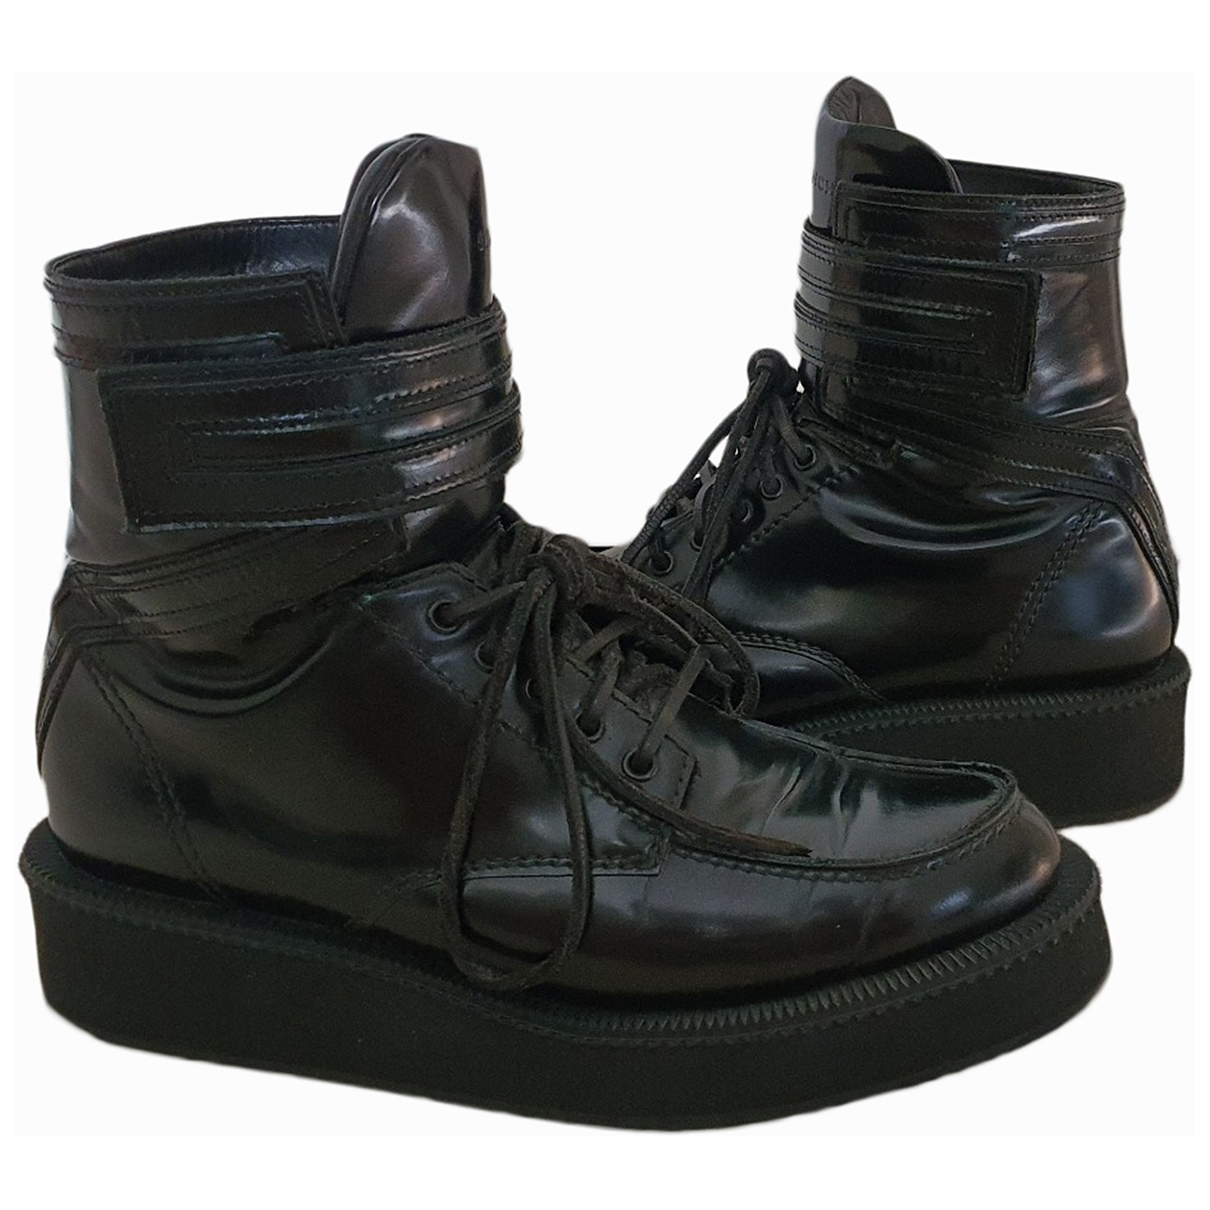 Givenchy \N Black Patent leather Boots for Men 43 EU